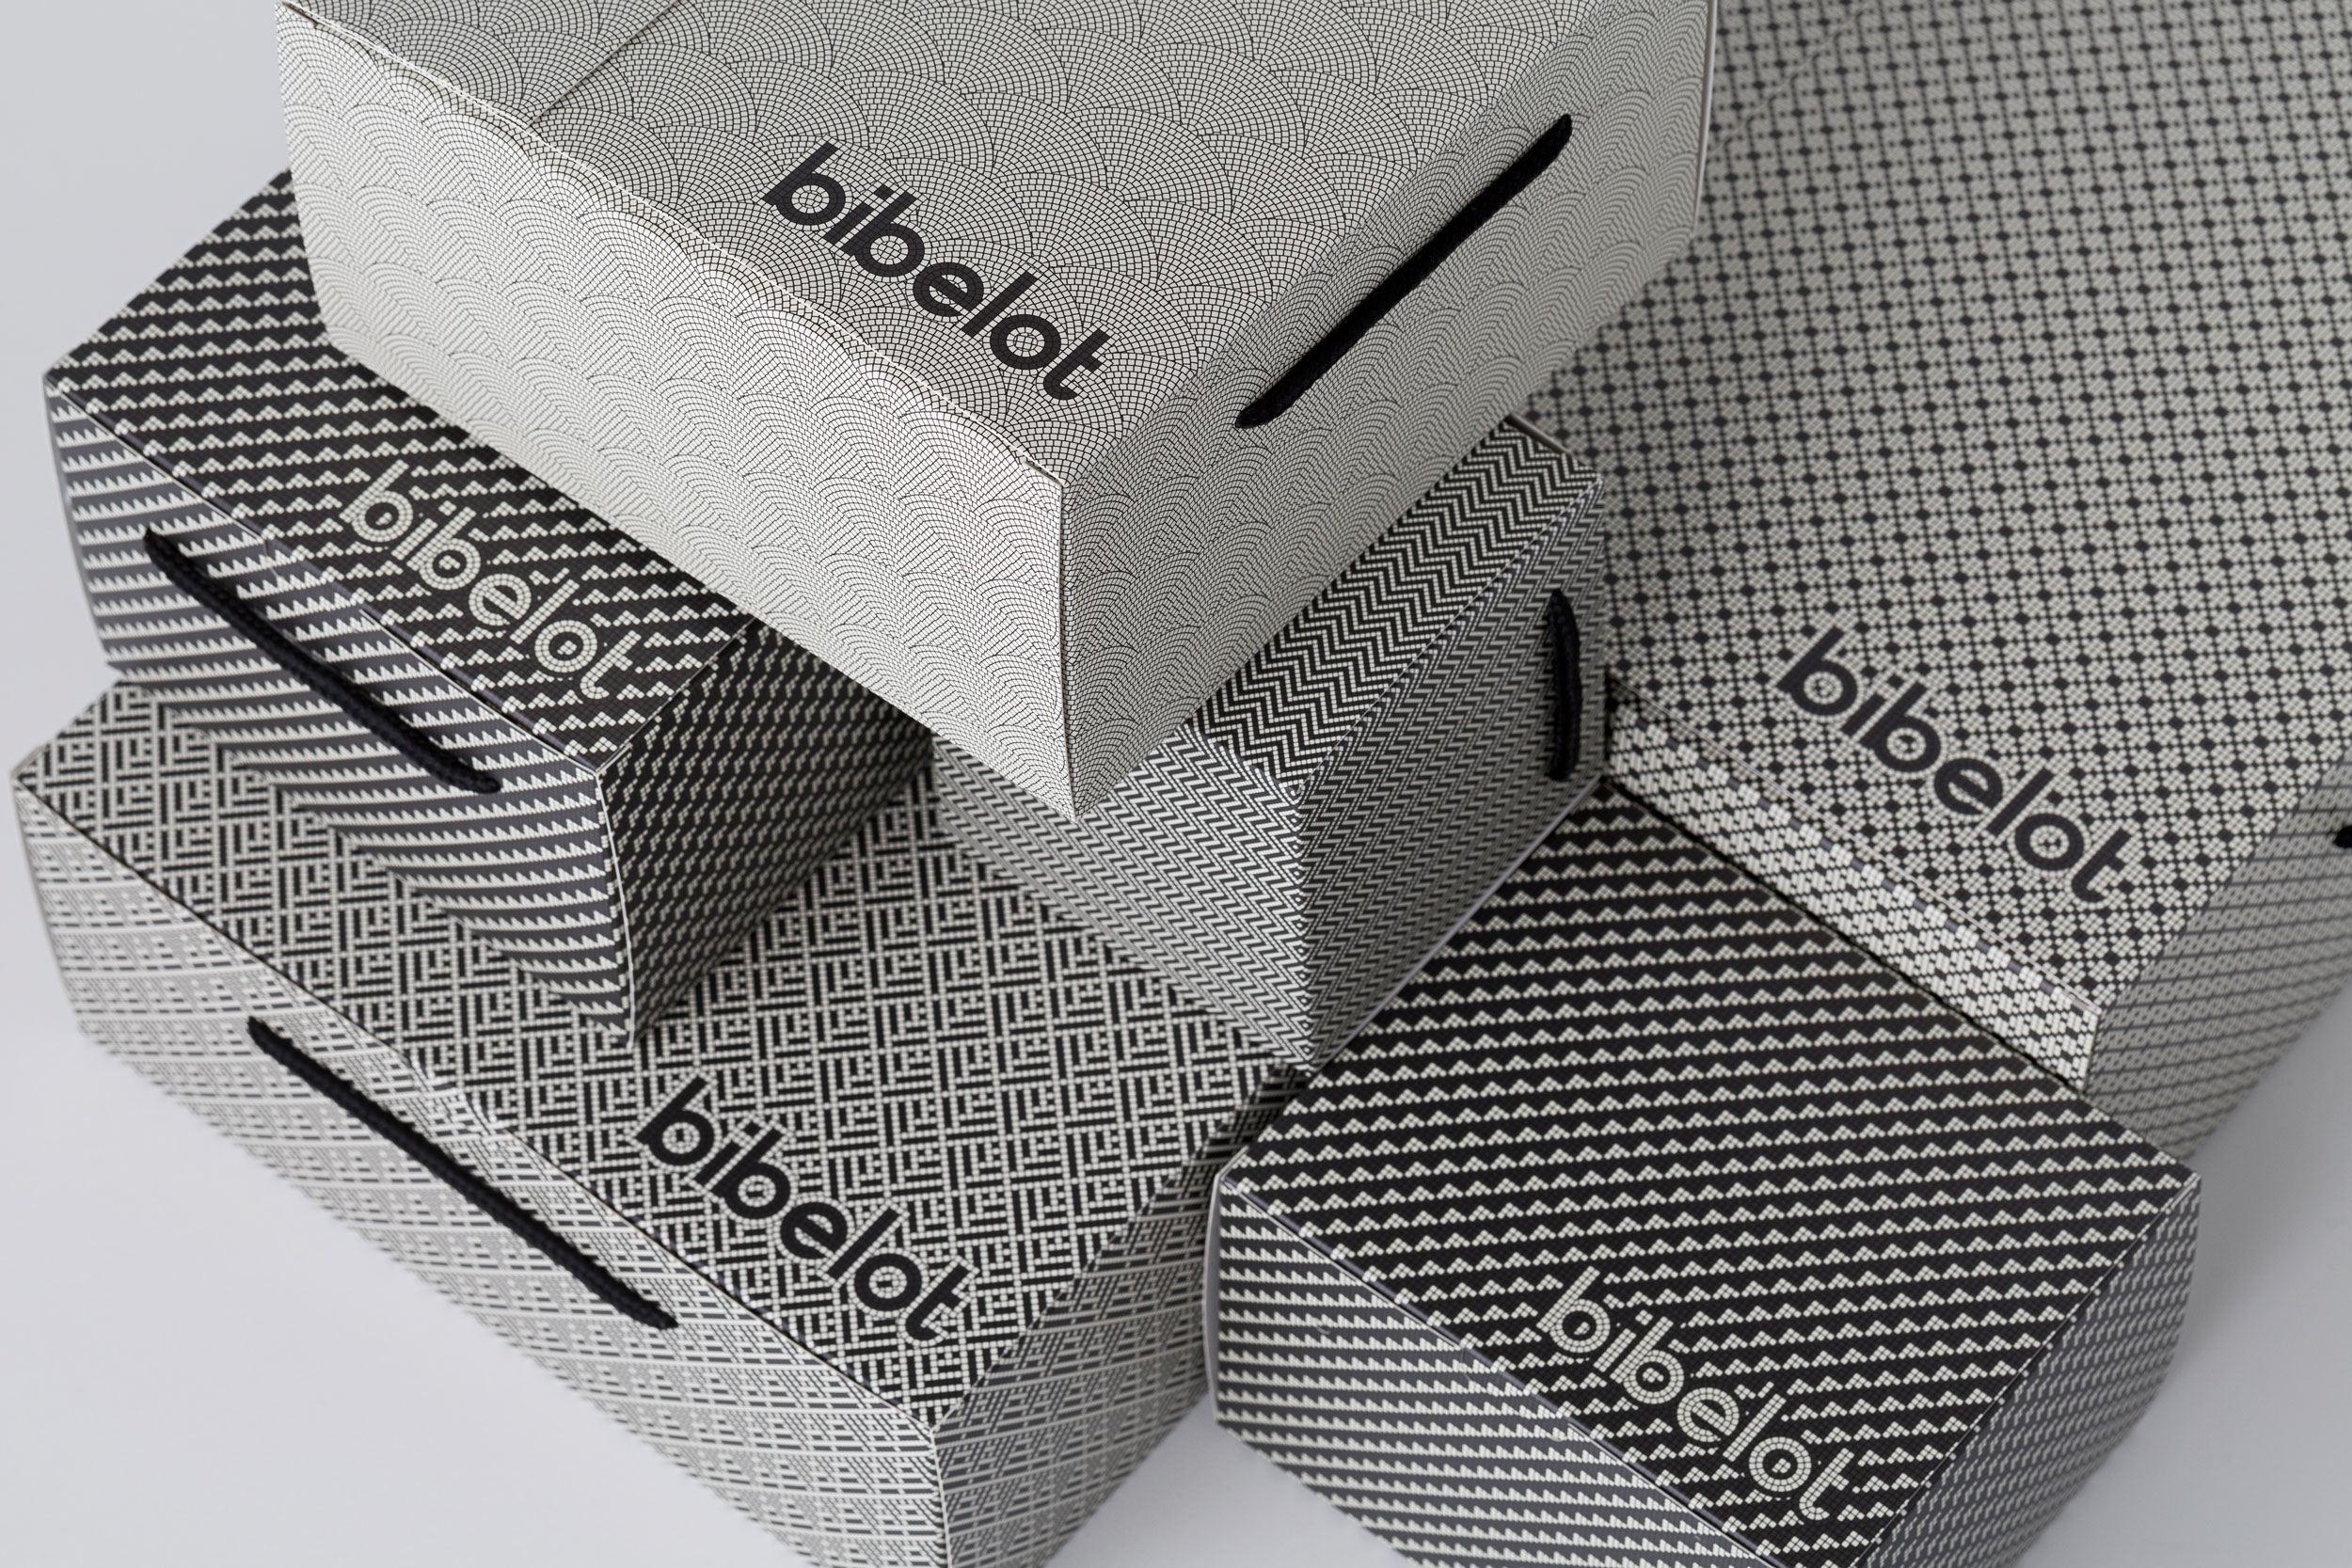 Sarah_Anderson_Photography_Bibelot_for_AFOM_packaging_boxes